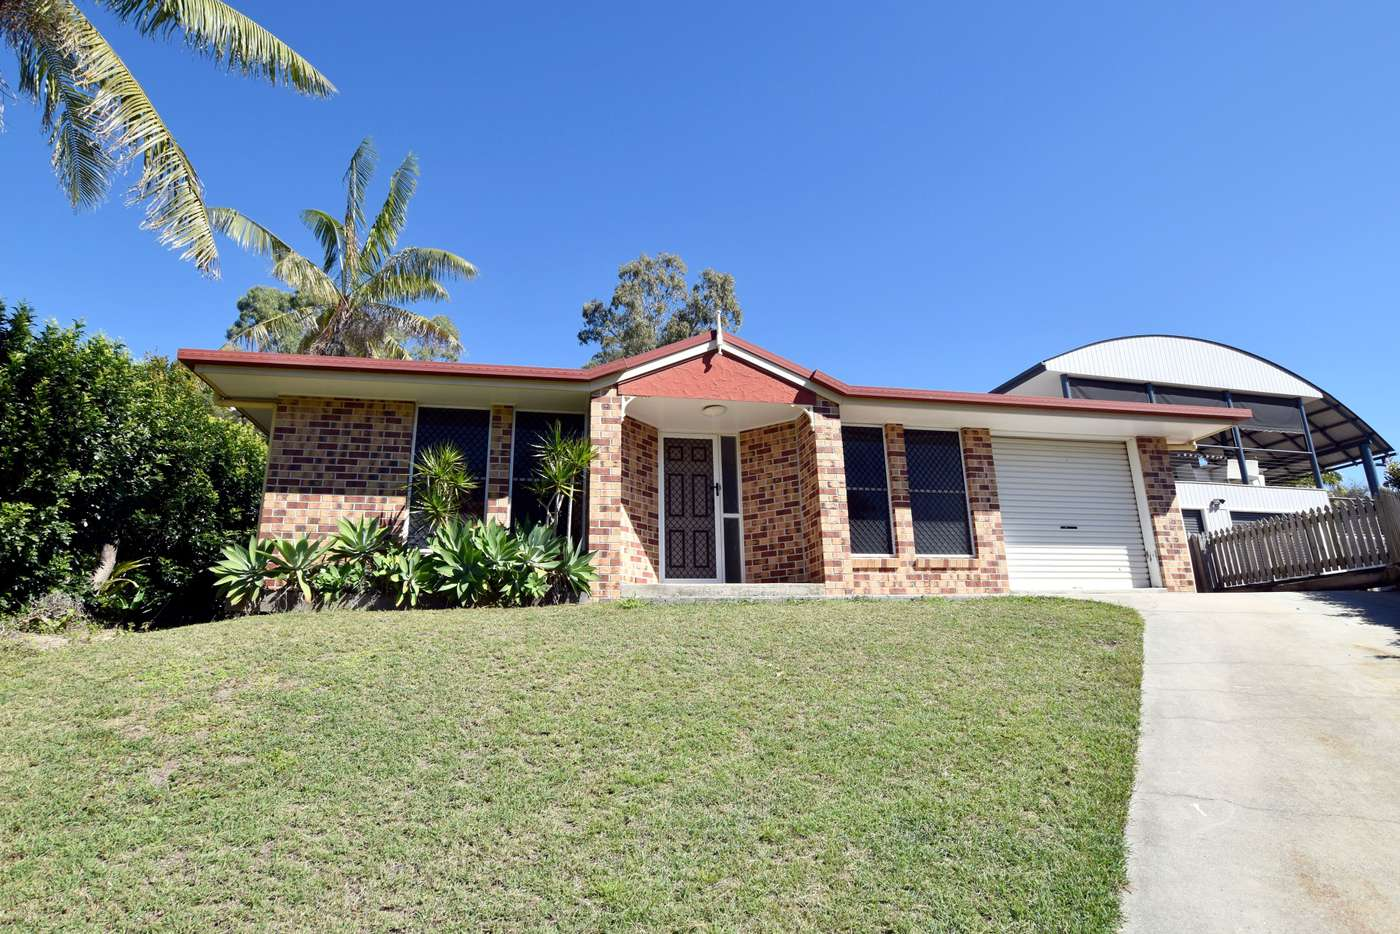 Main view of Homely house listing, 14 Solonika Court, South Gladstone QLD 4680